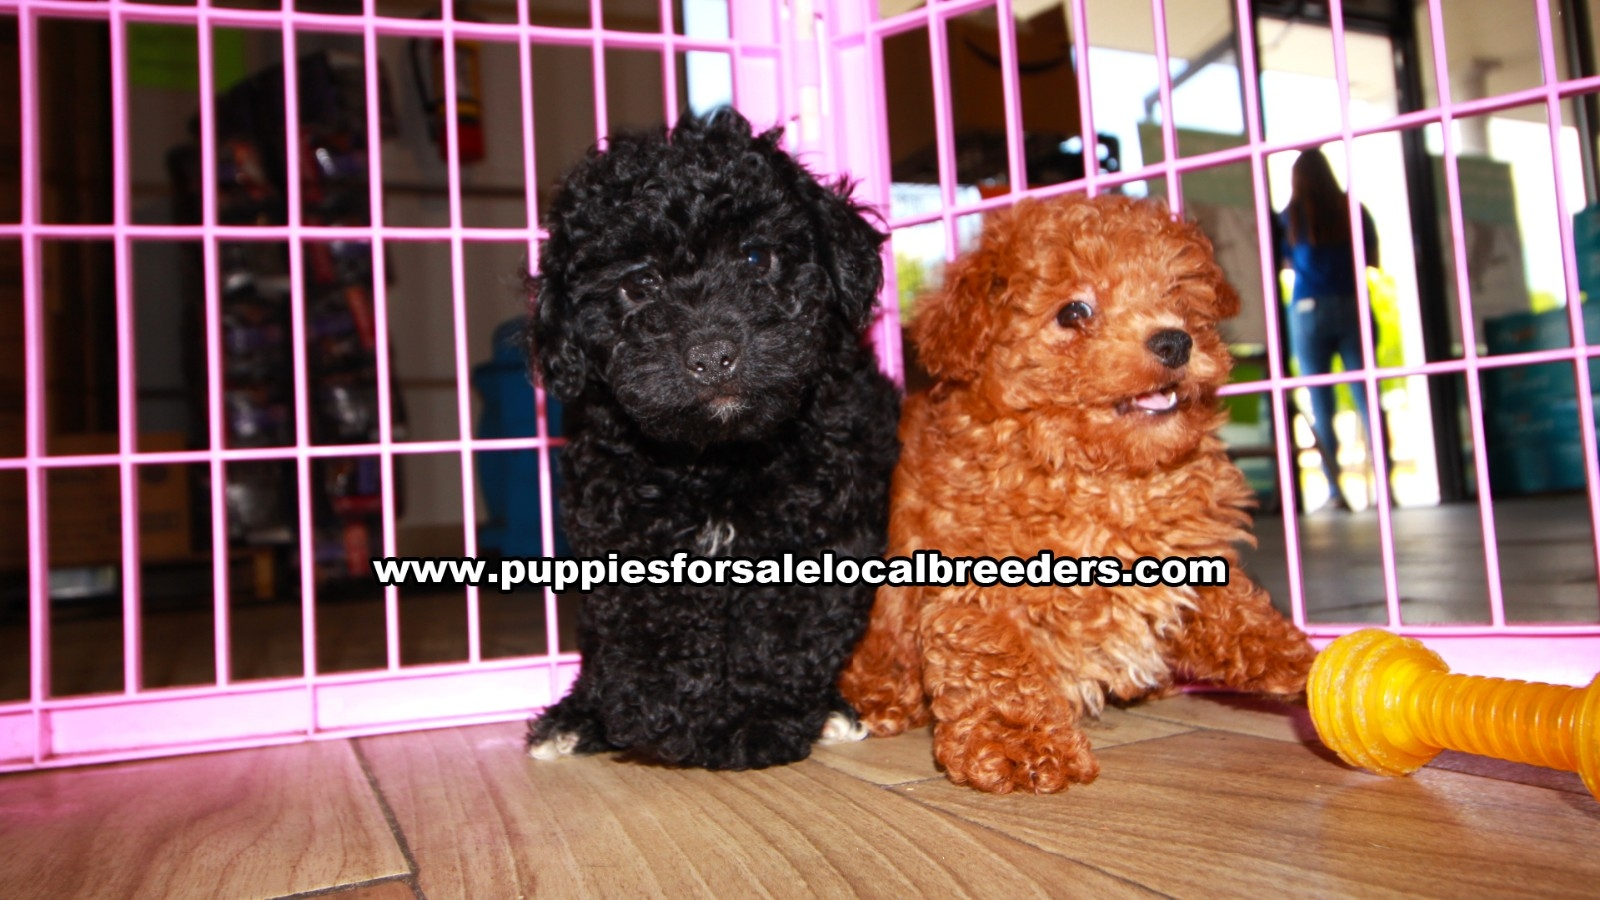 Poodle, Puppies For Sale In Georgia, Local Breeders, Near Atlanta, Ga